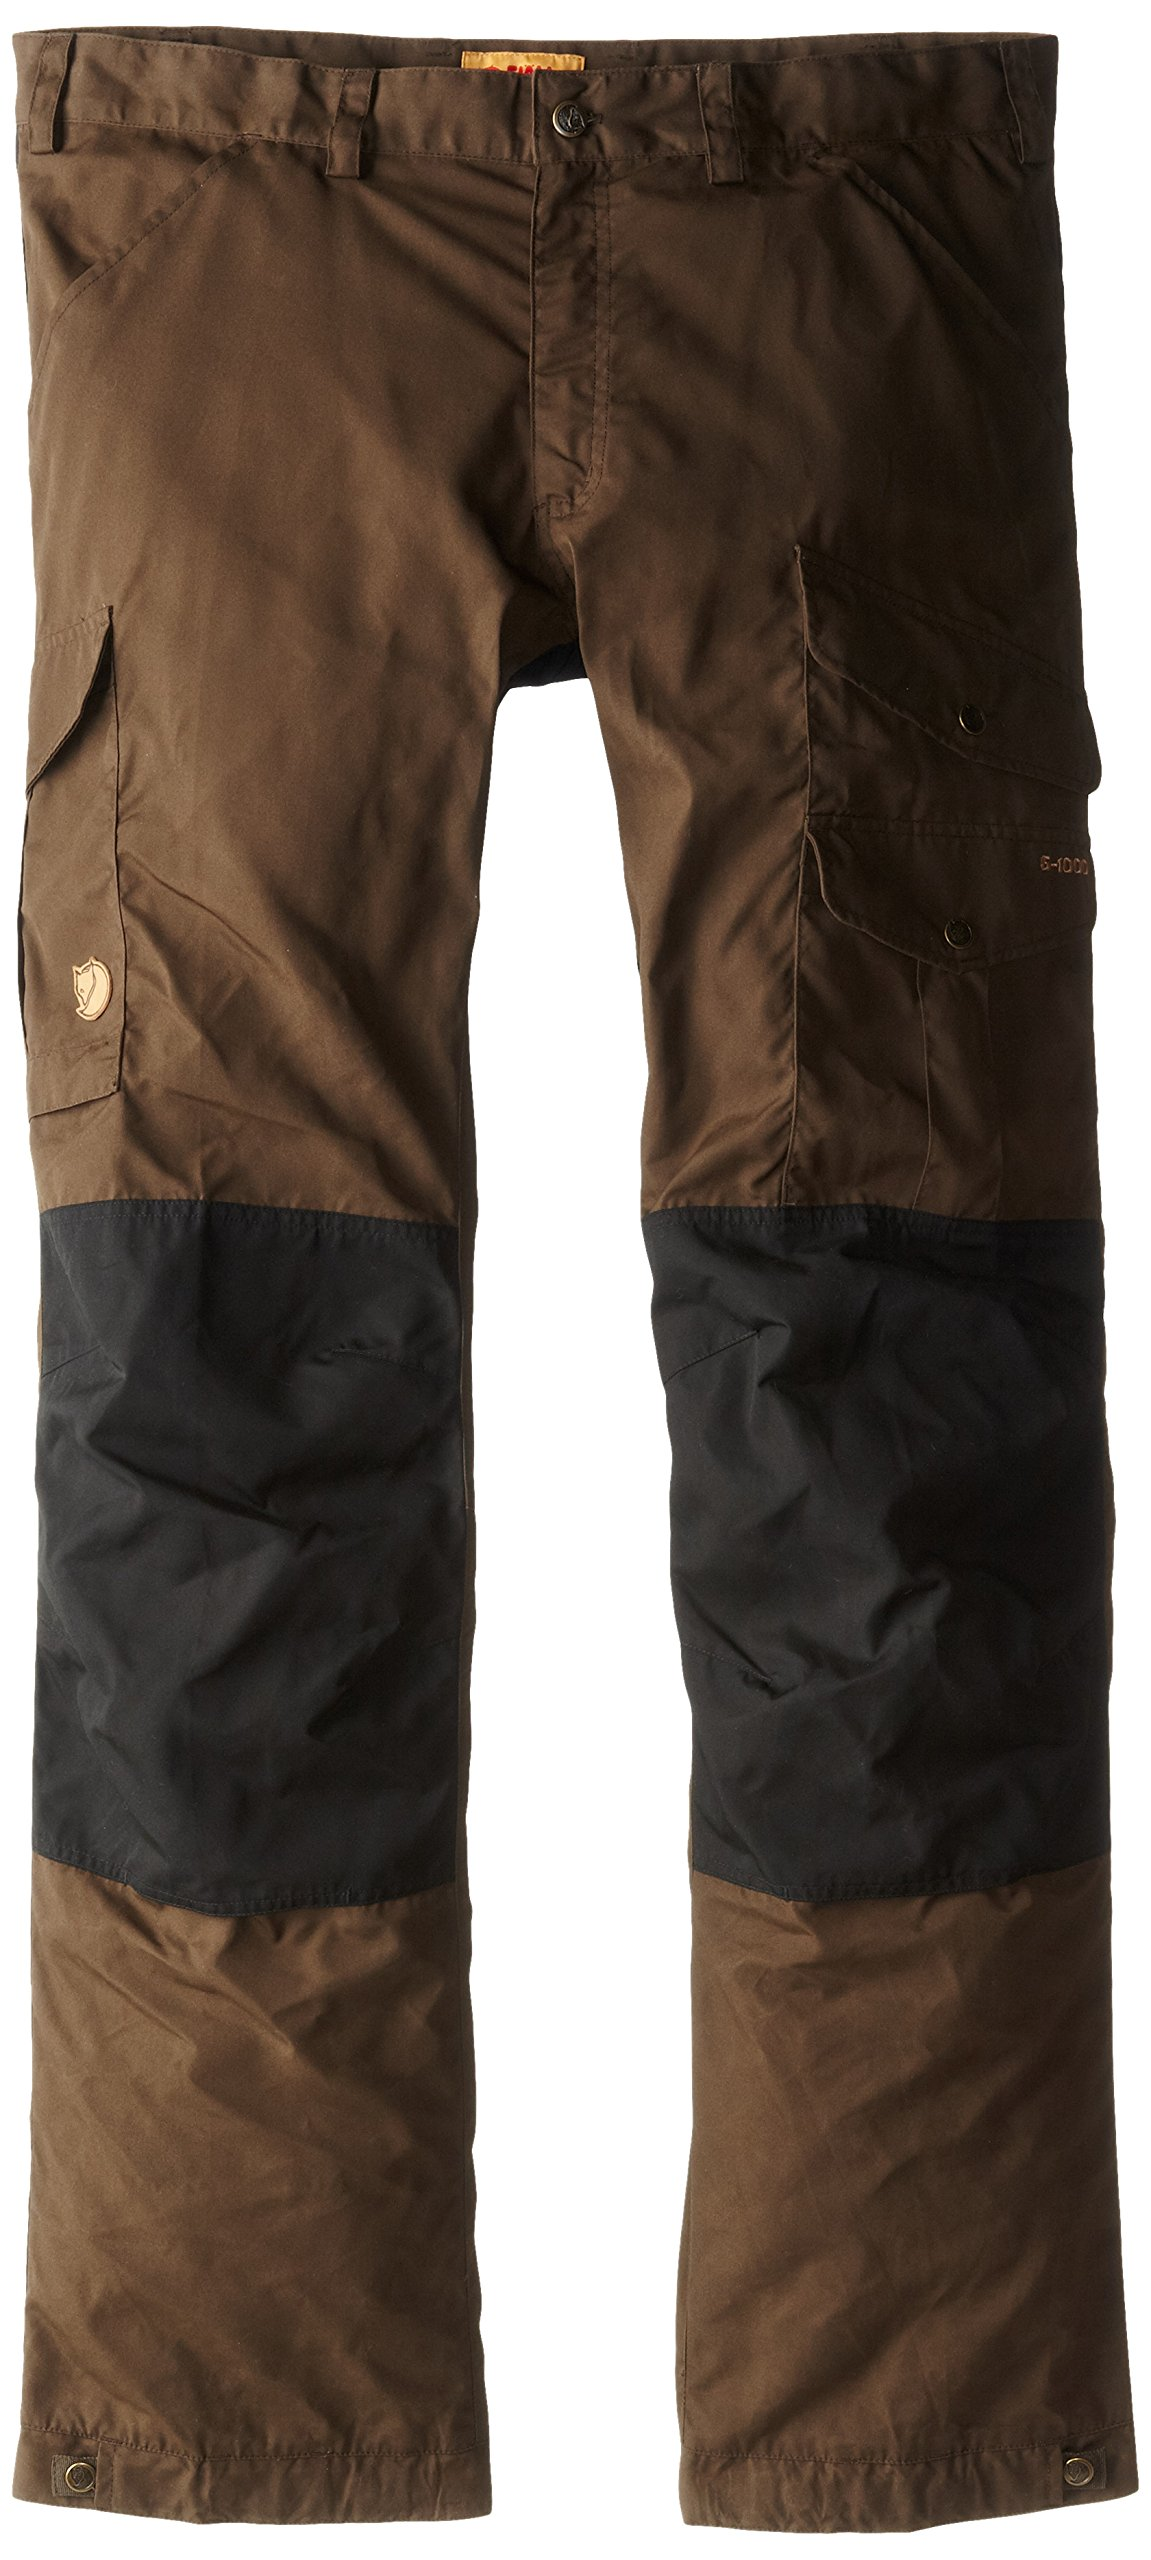 Fjallraven Men's Vidda Pro Trousers, Dark Olive, 50 by Fjallraven (Image #1)